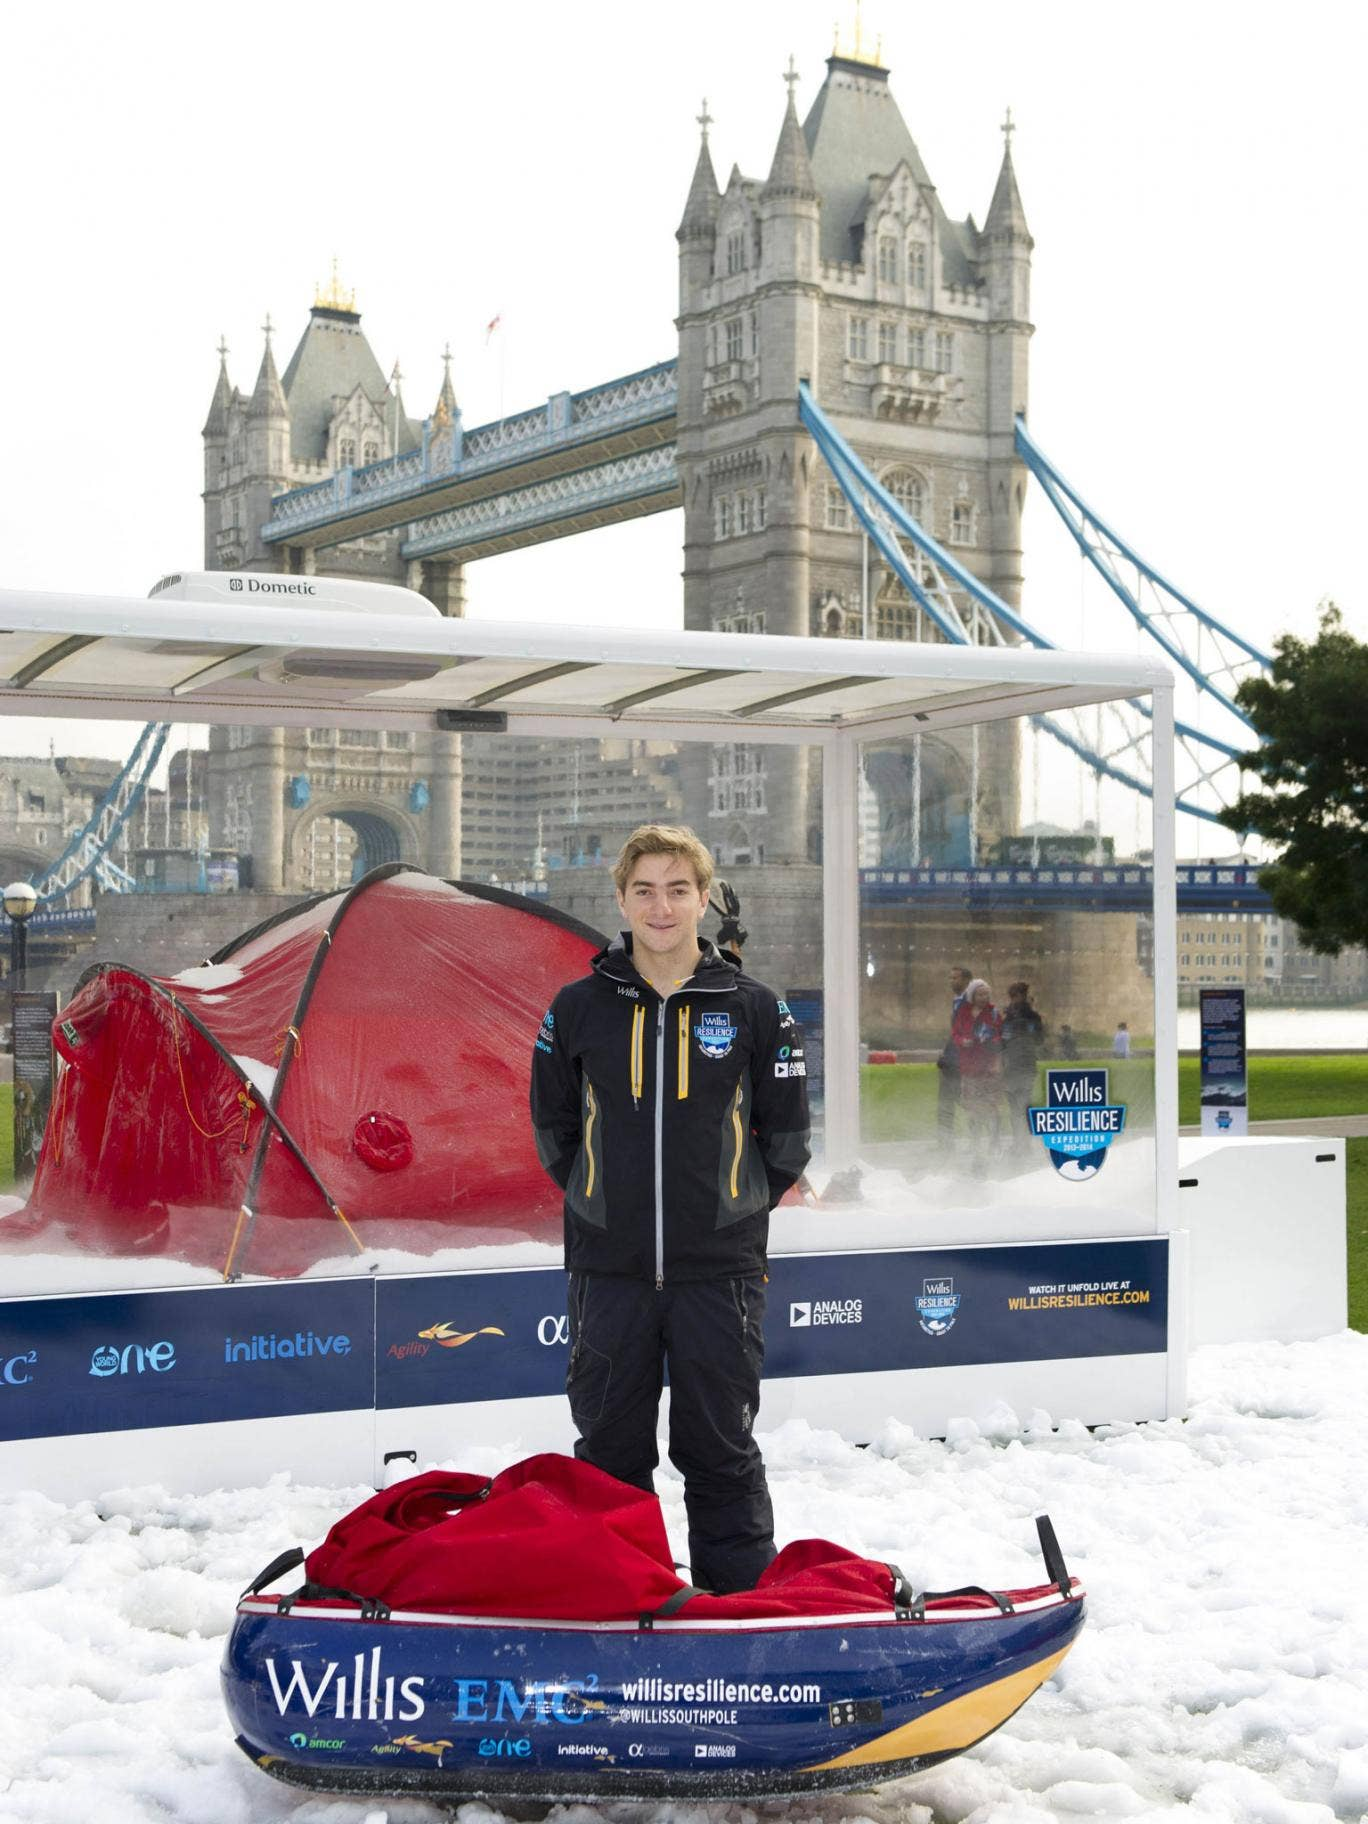 Parker Liautaud outside the Antarctic chamber, where the temperature is -25C